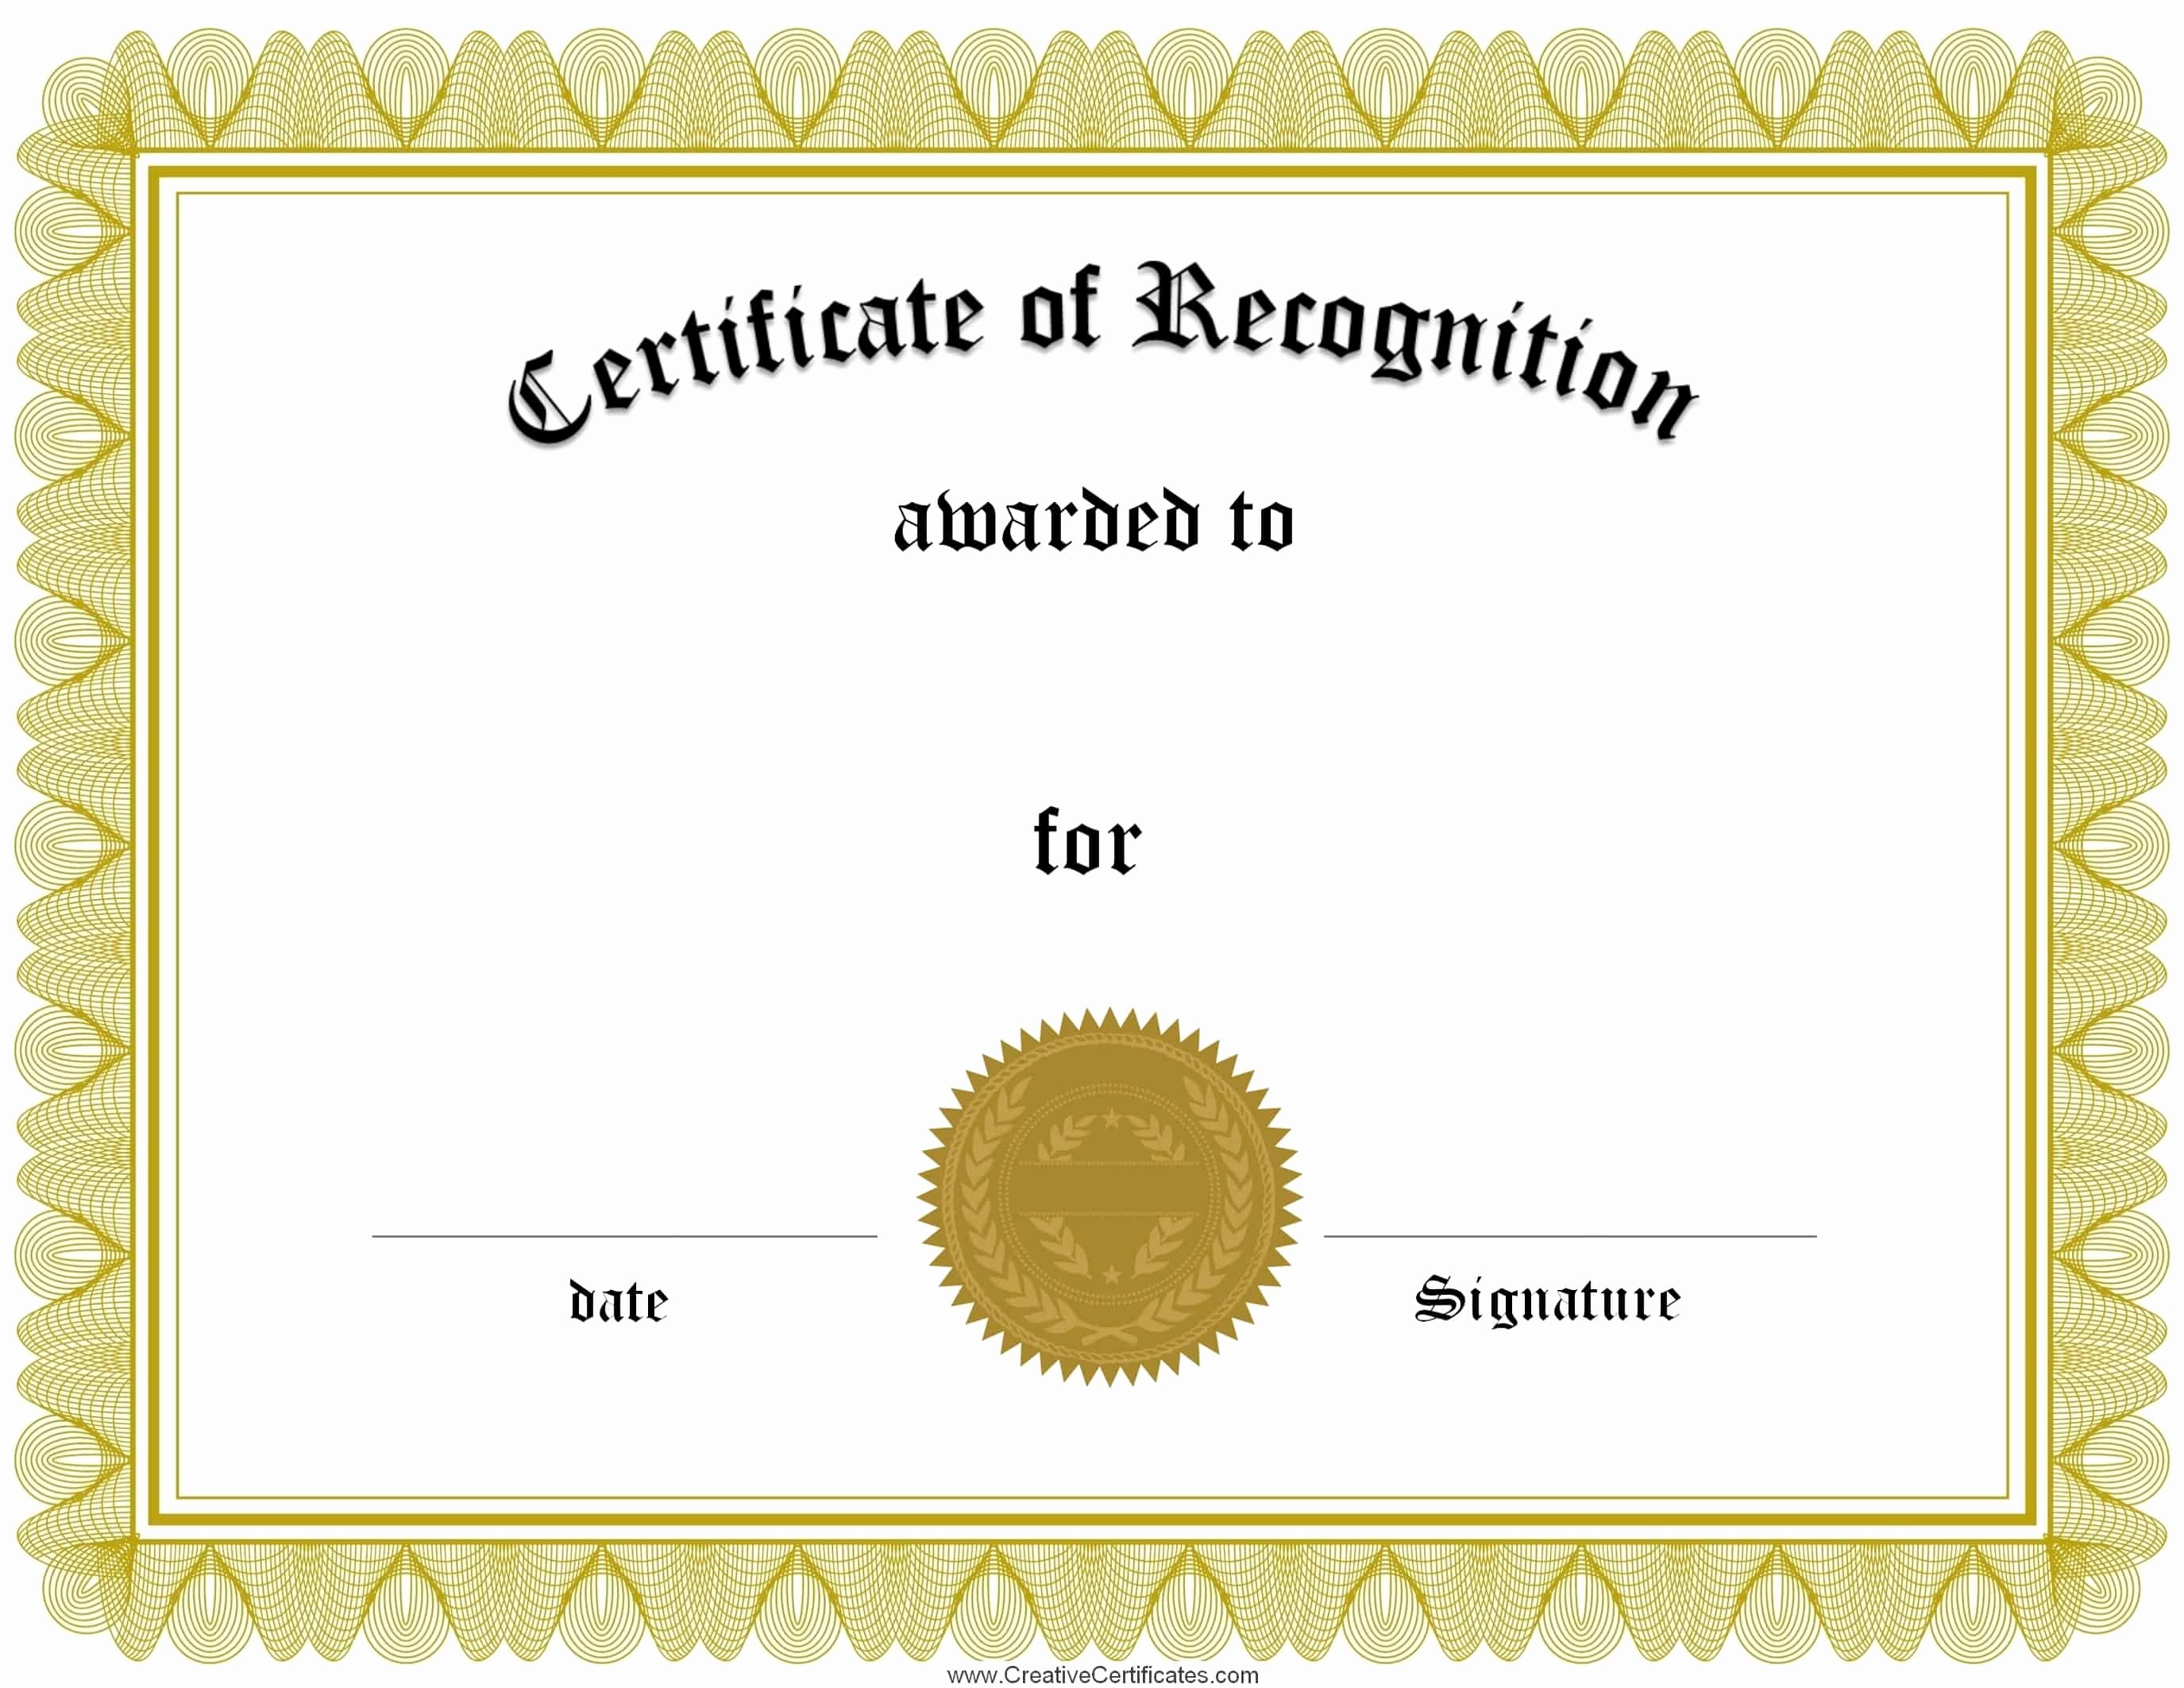 Word Template Certificate Of Recognition Beautiful Free Certificate Of Recognition Template